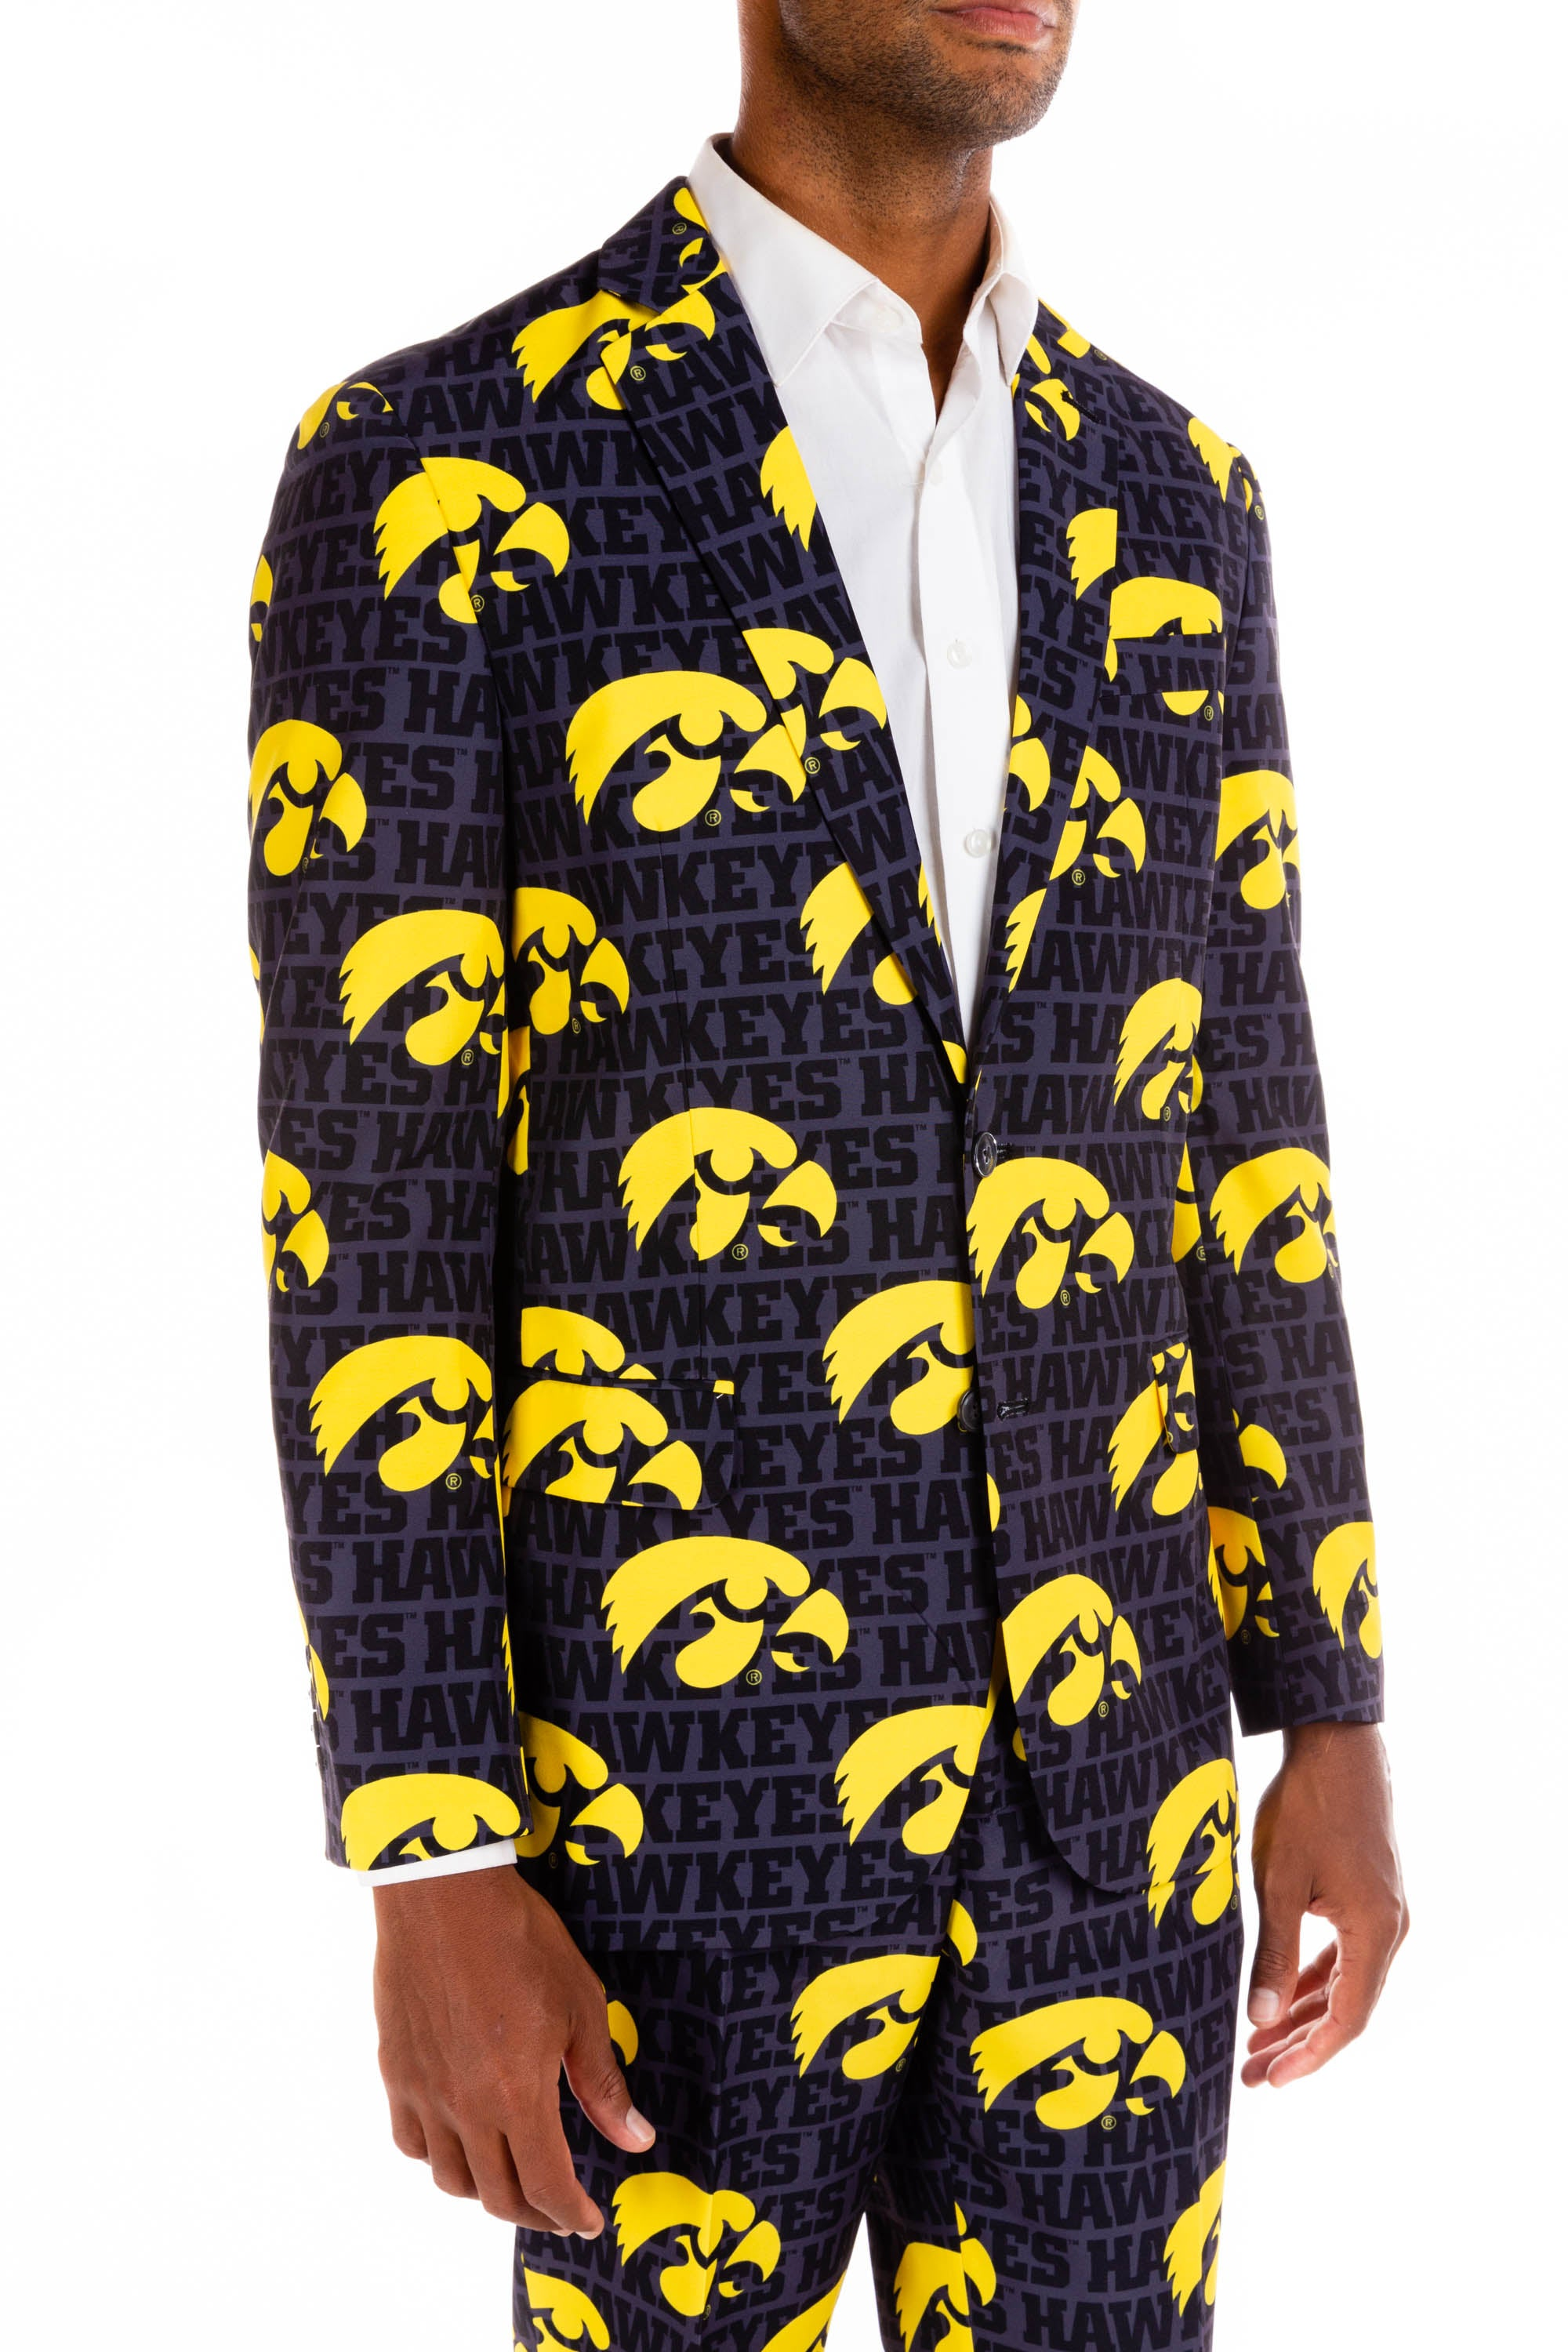 University of Iowa Hawkeyes Gameday Blazer